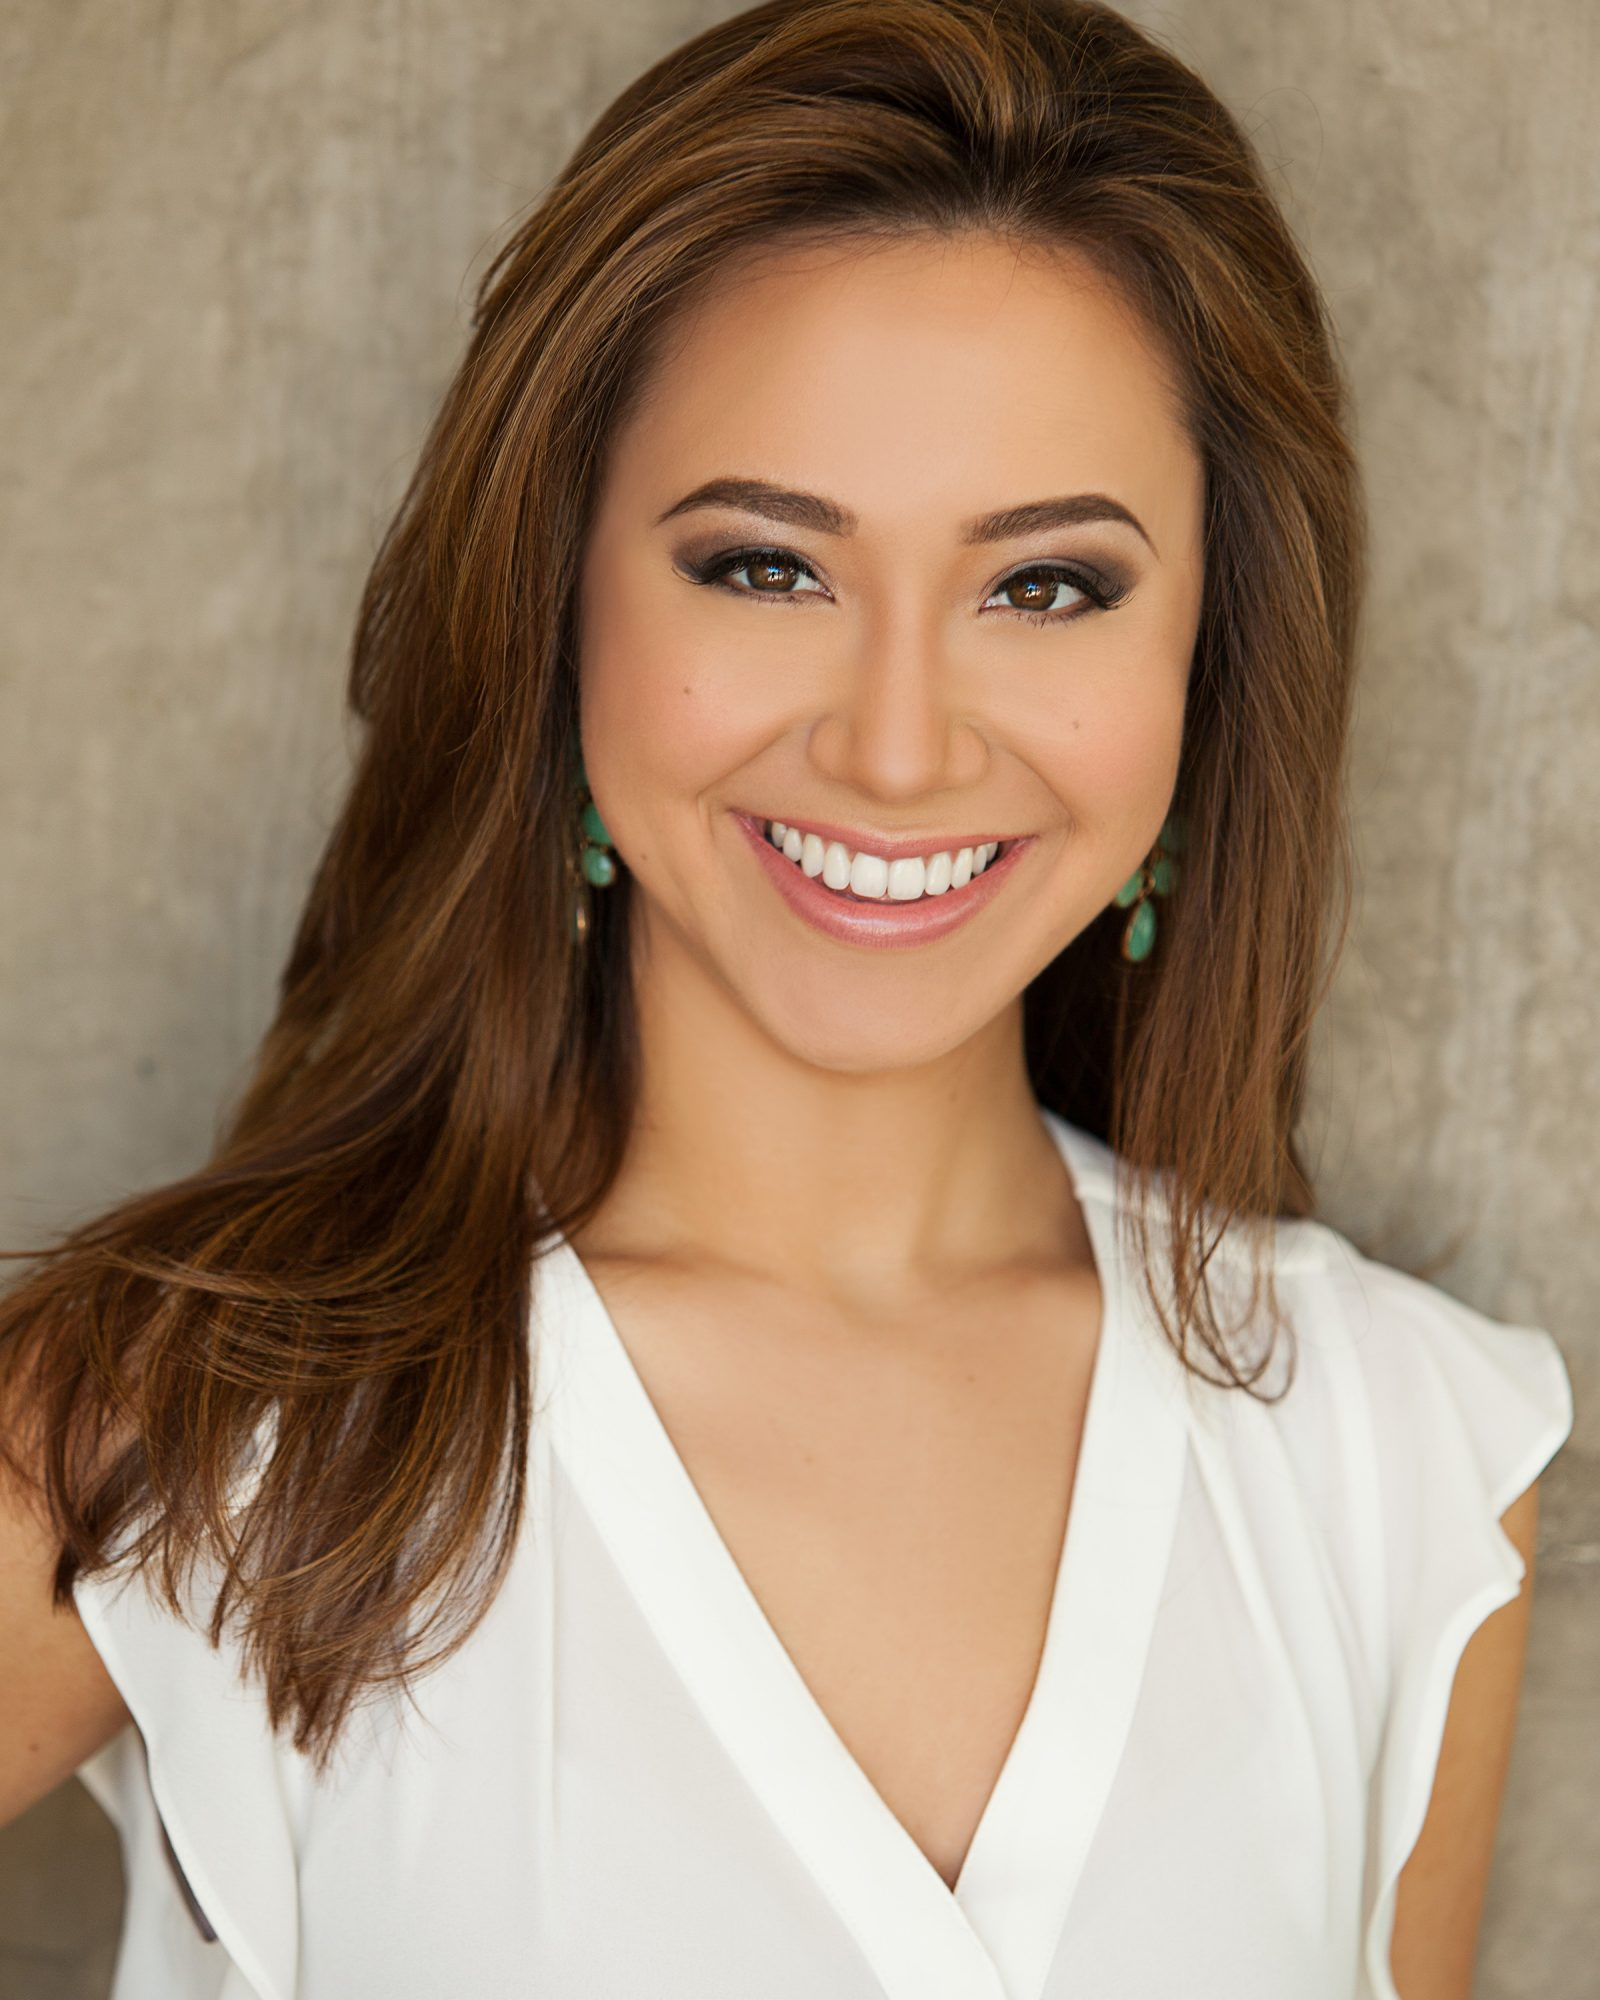 miss-district-of-columbia-teresa-davis.jpg